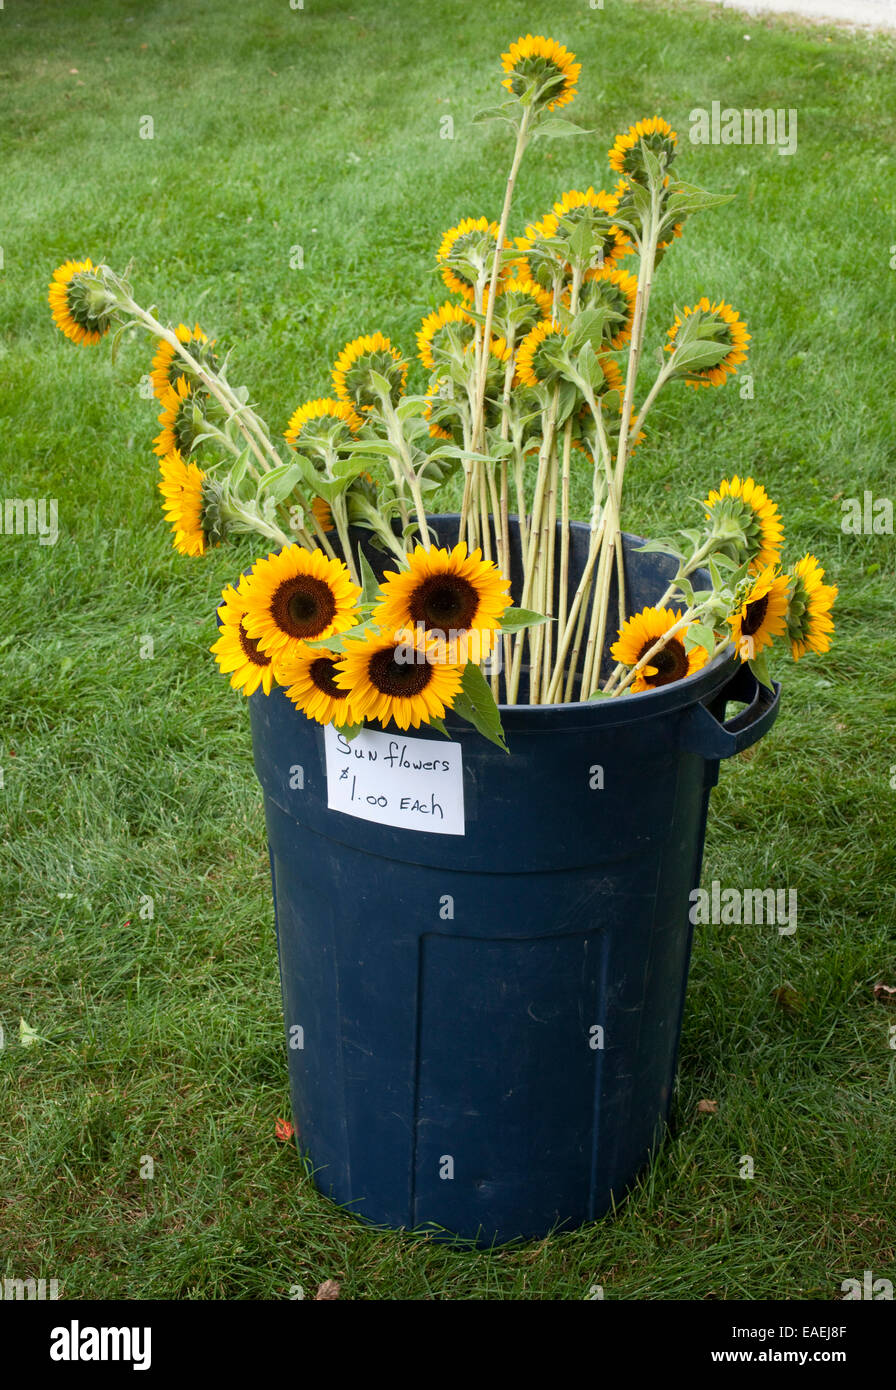 Sunflowers for sale in large trash can - Stock Image